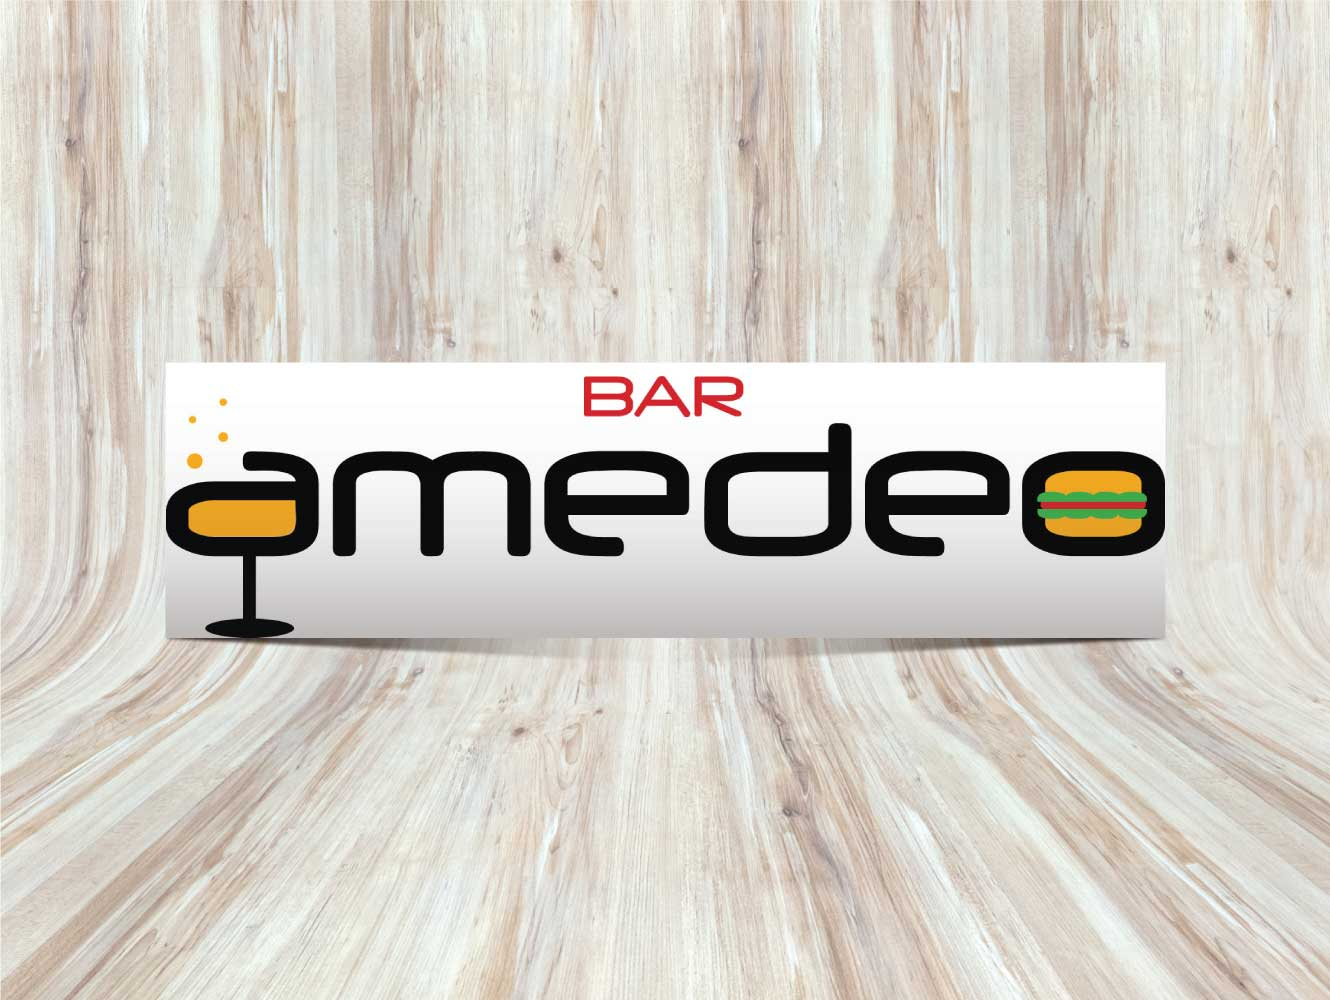 logo-bar-amedeo